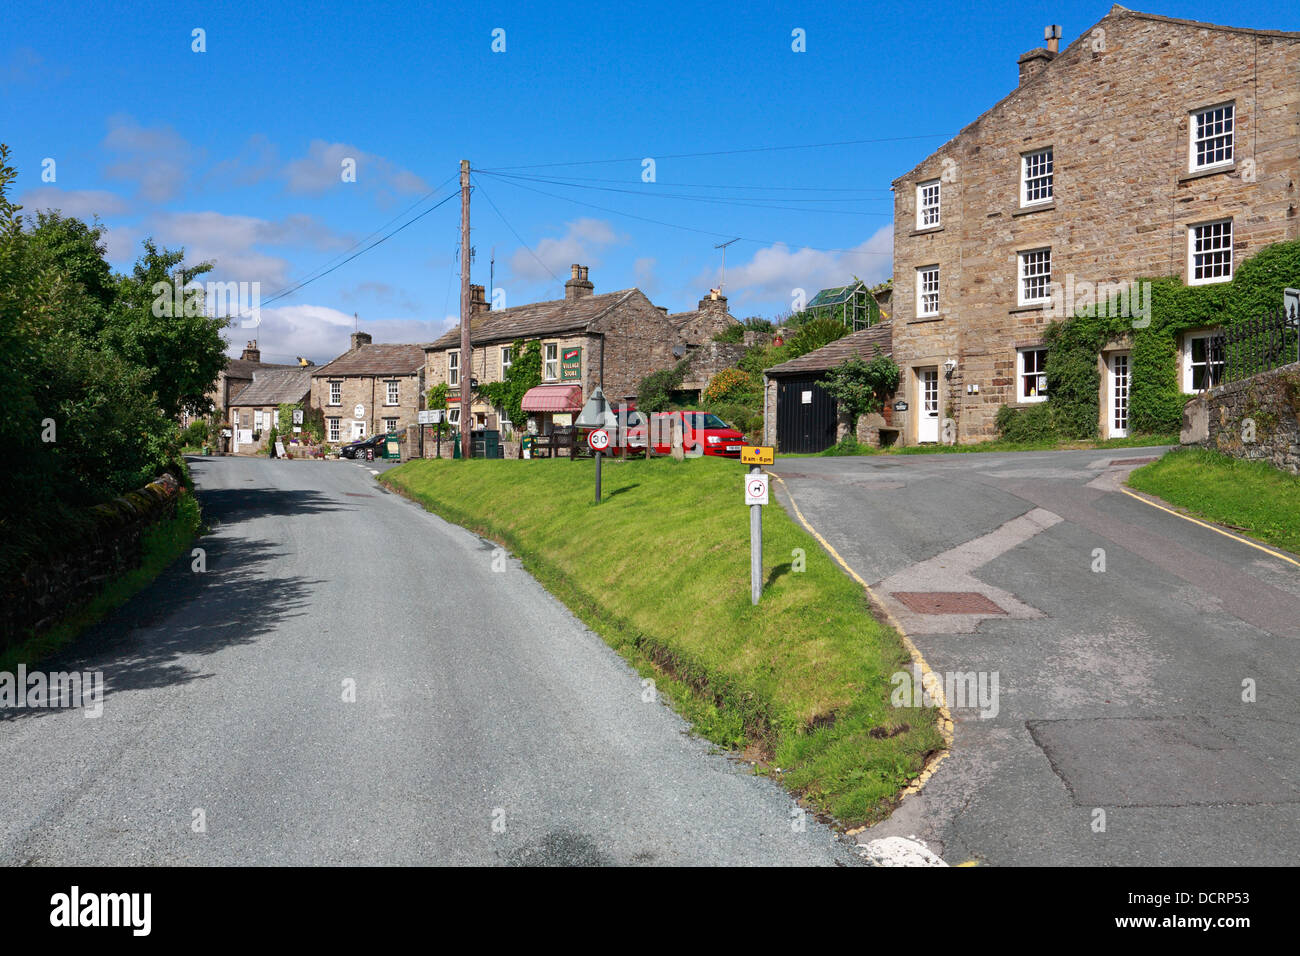 Muker in Swaledale, North Yorkshire, Yorkshire Dales National Park, England, UK. - Stock Image